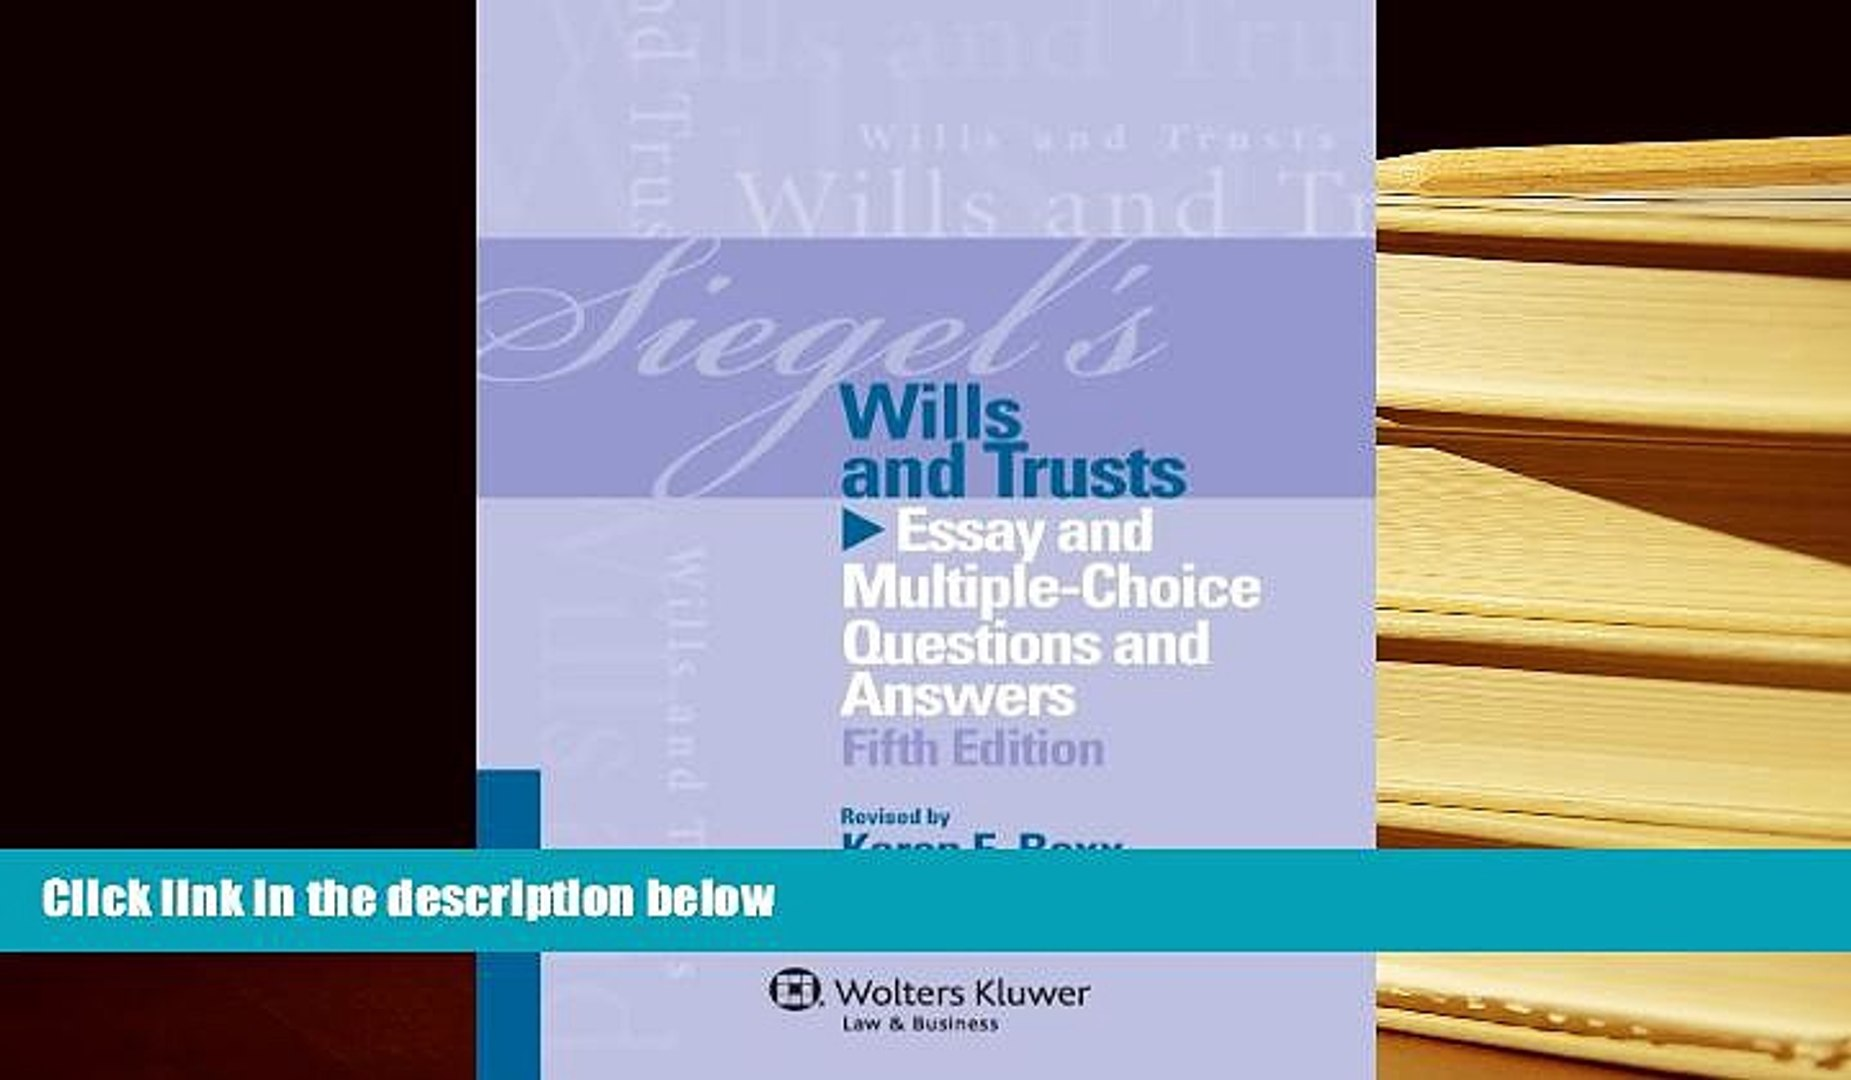 BEST PDF  Siegels Wills   Trusts: Essay and Multiple-Choice Questions and Answers, Fifth Edition